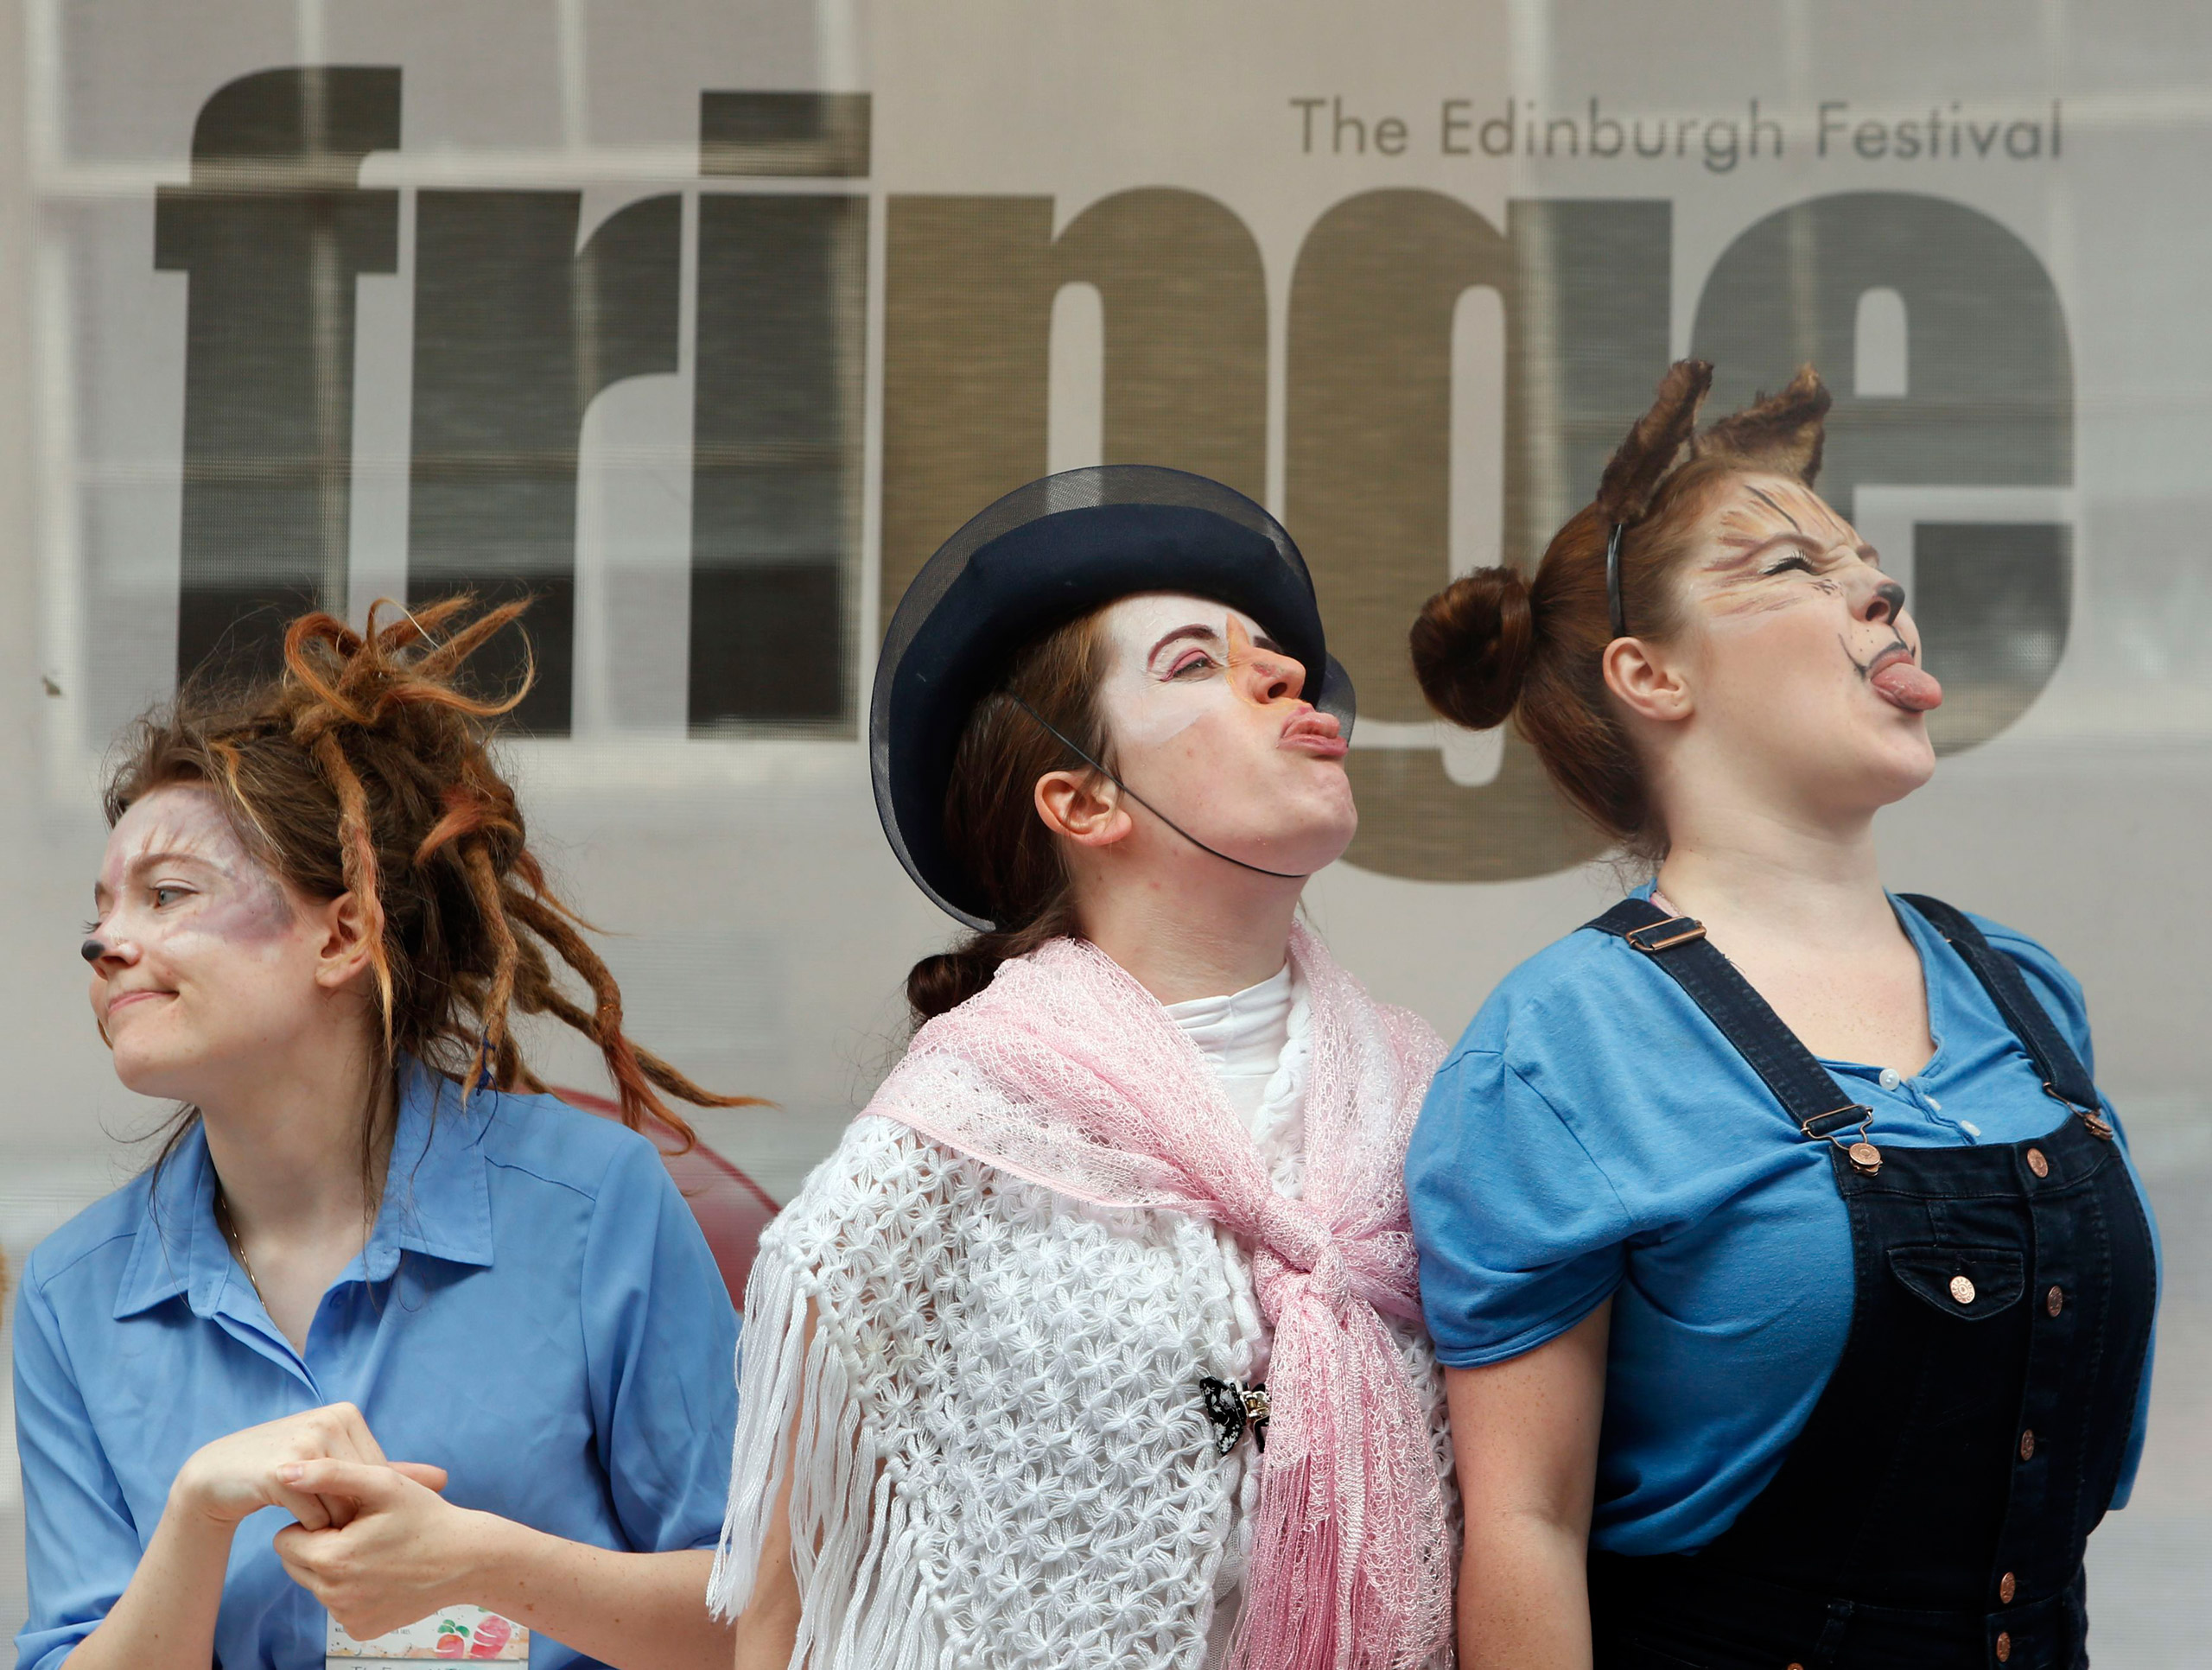 Performers from The Emerald Theatre promote their Edinburgh Festival Fringe show on the Royal Mile in Edinburgh on Aug. 24, 2015.